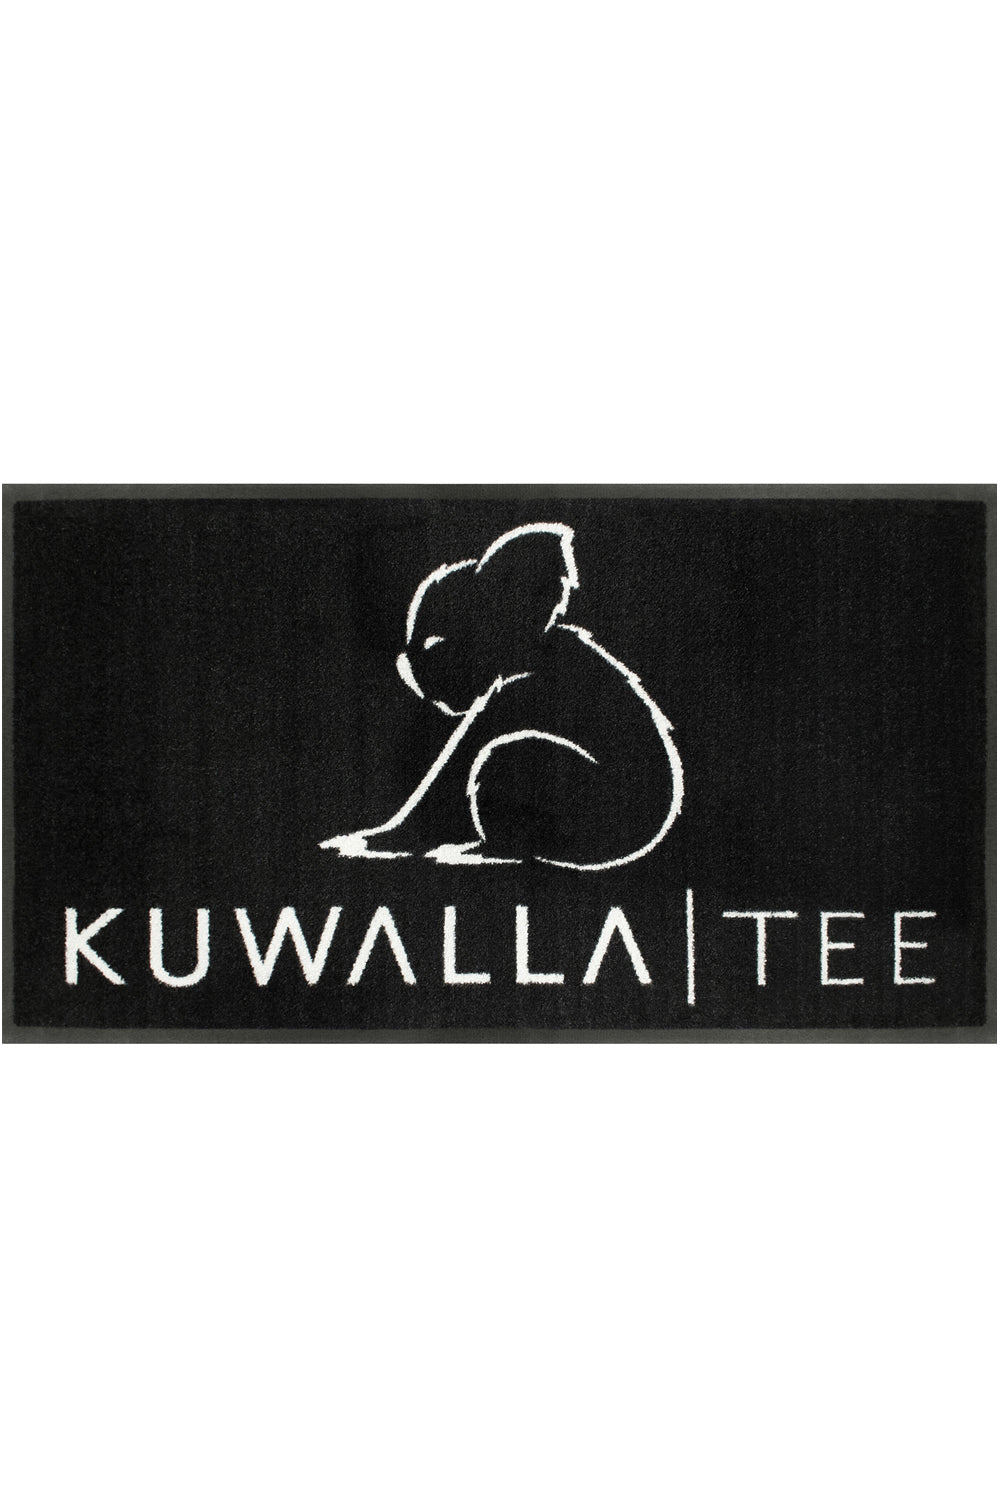 Kuwalla Carpet